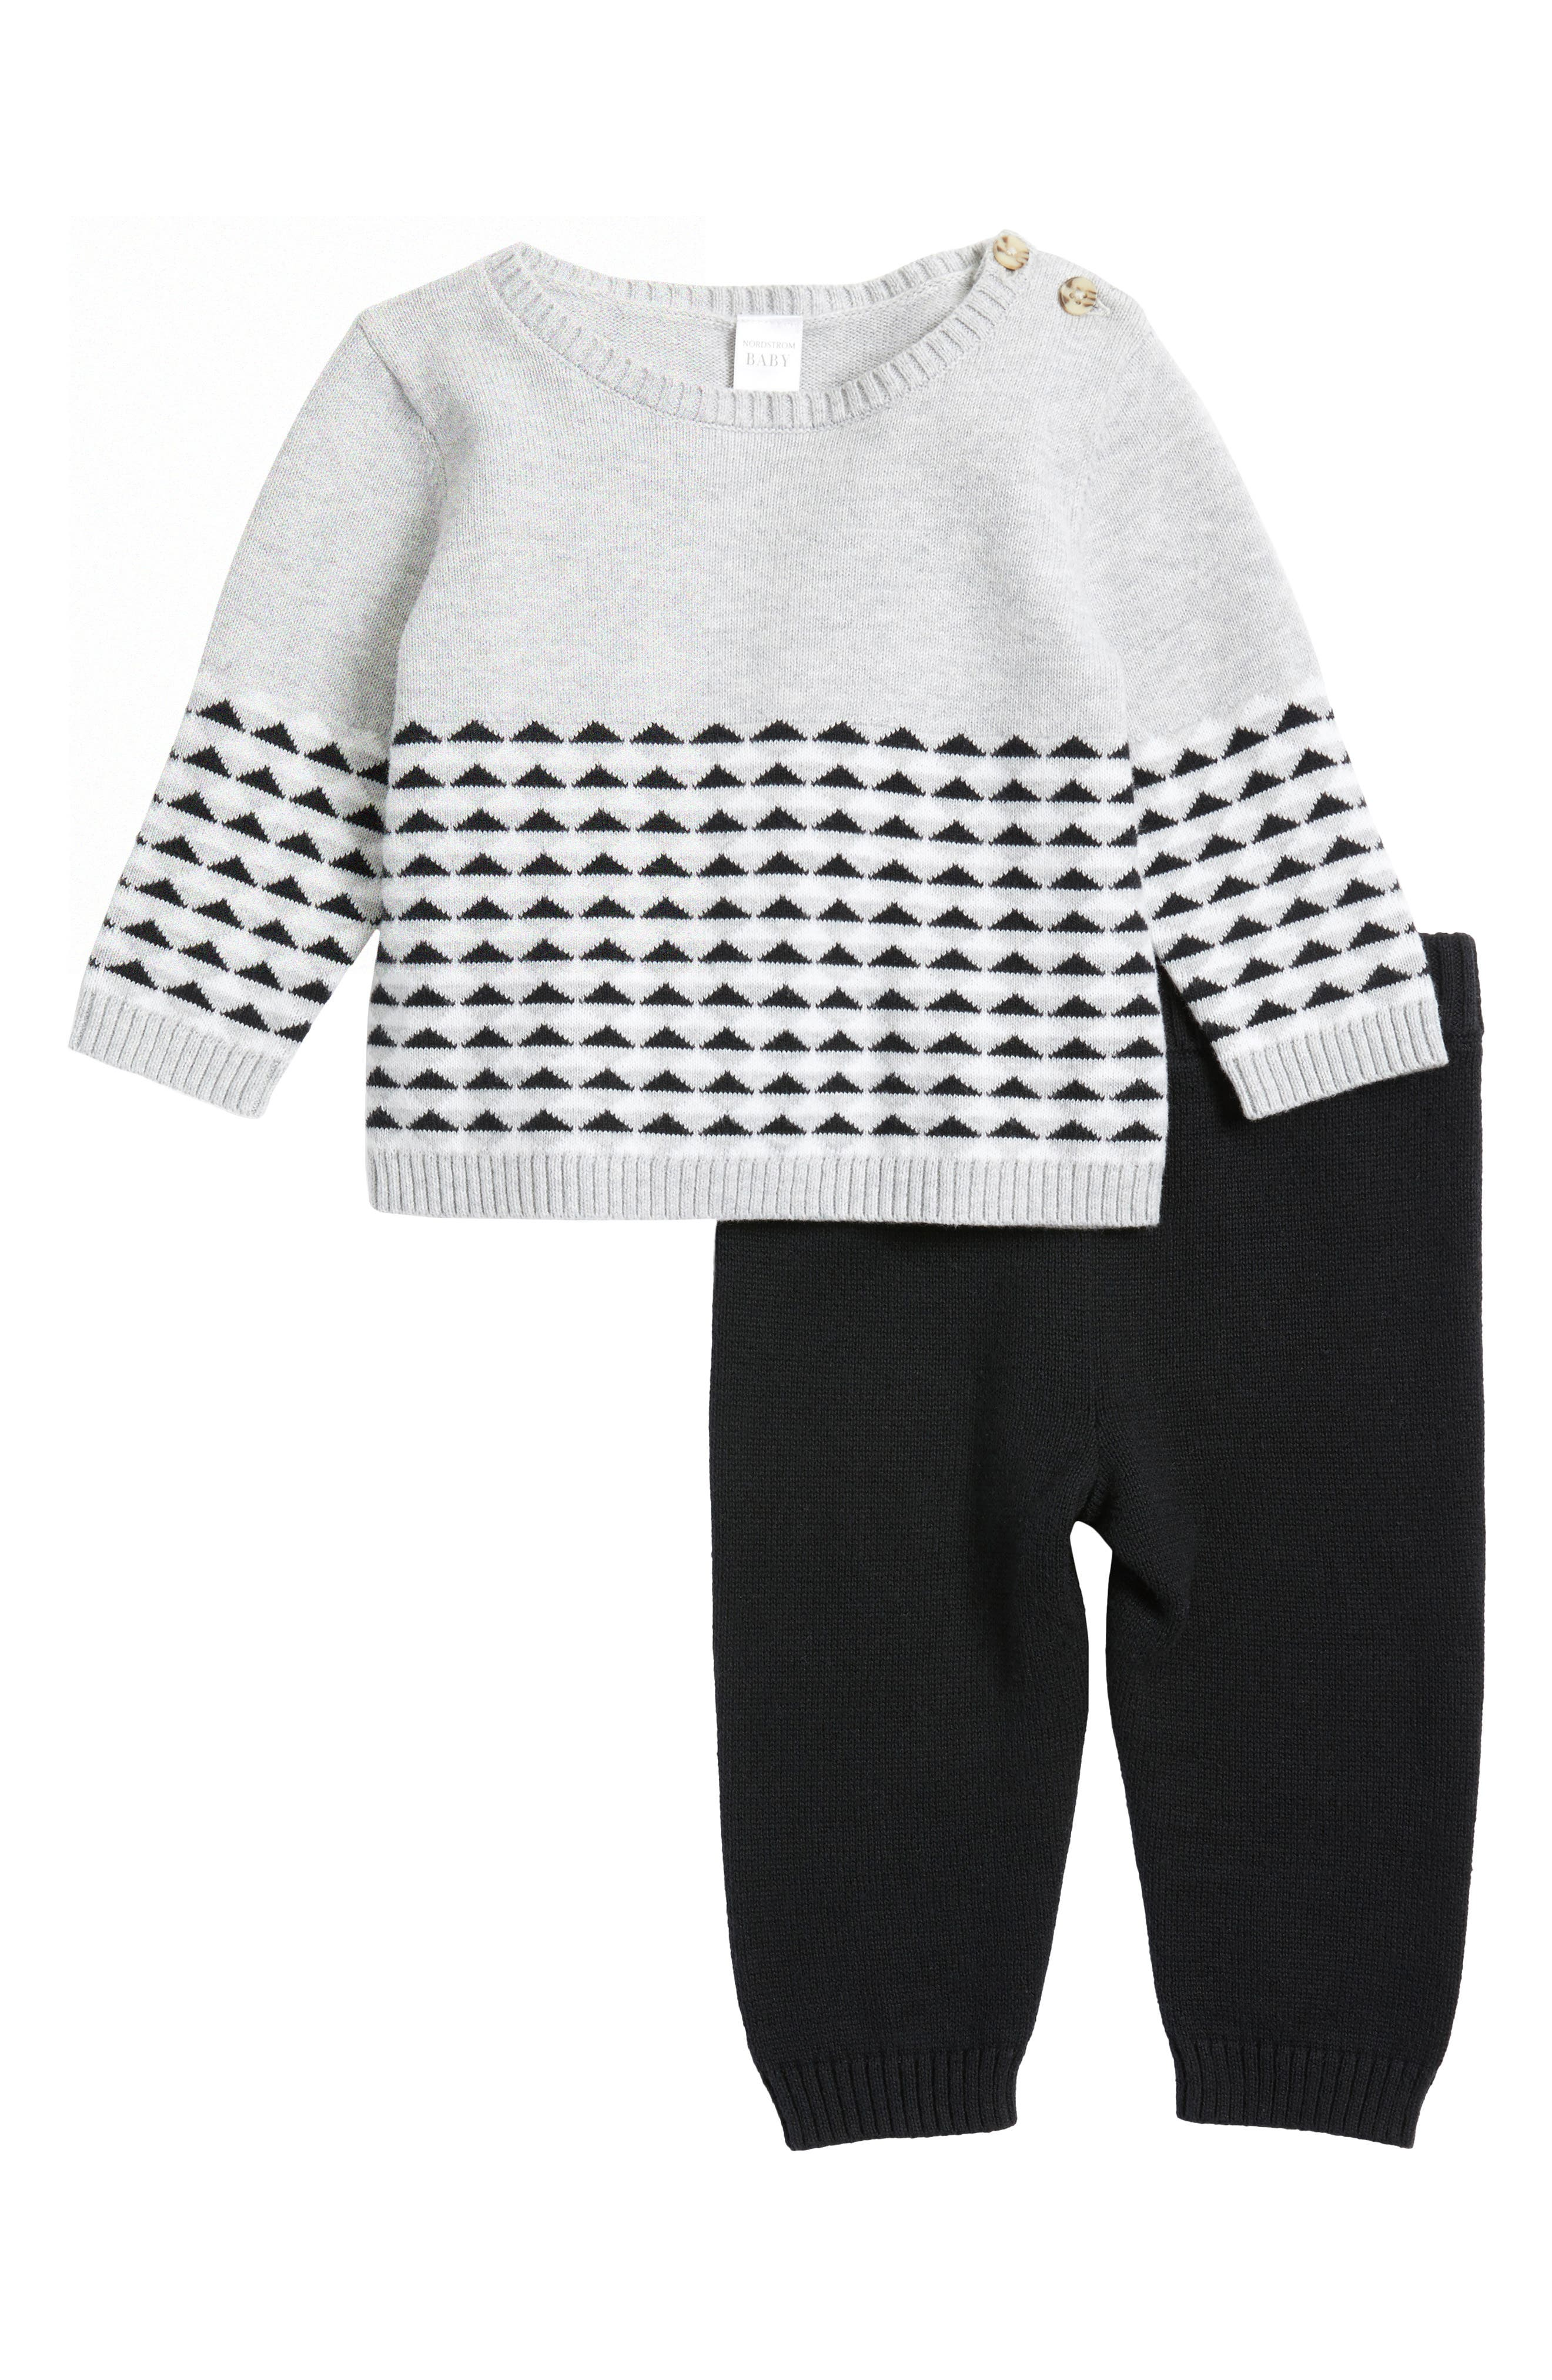 Main Image - Nordstrom Baby Sweater & Pants